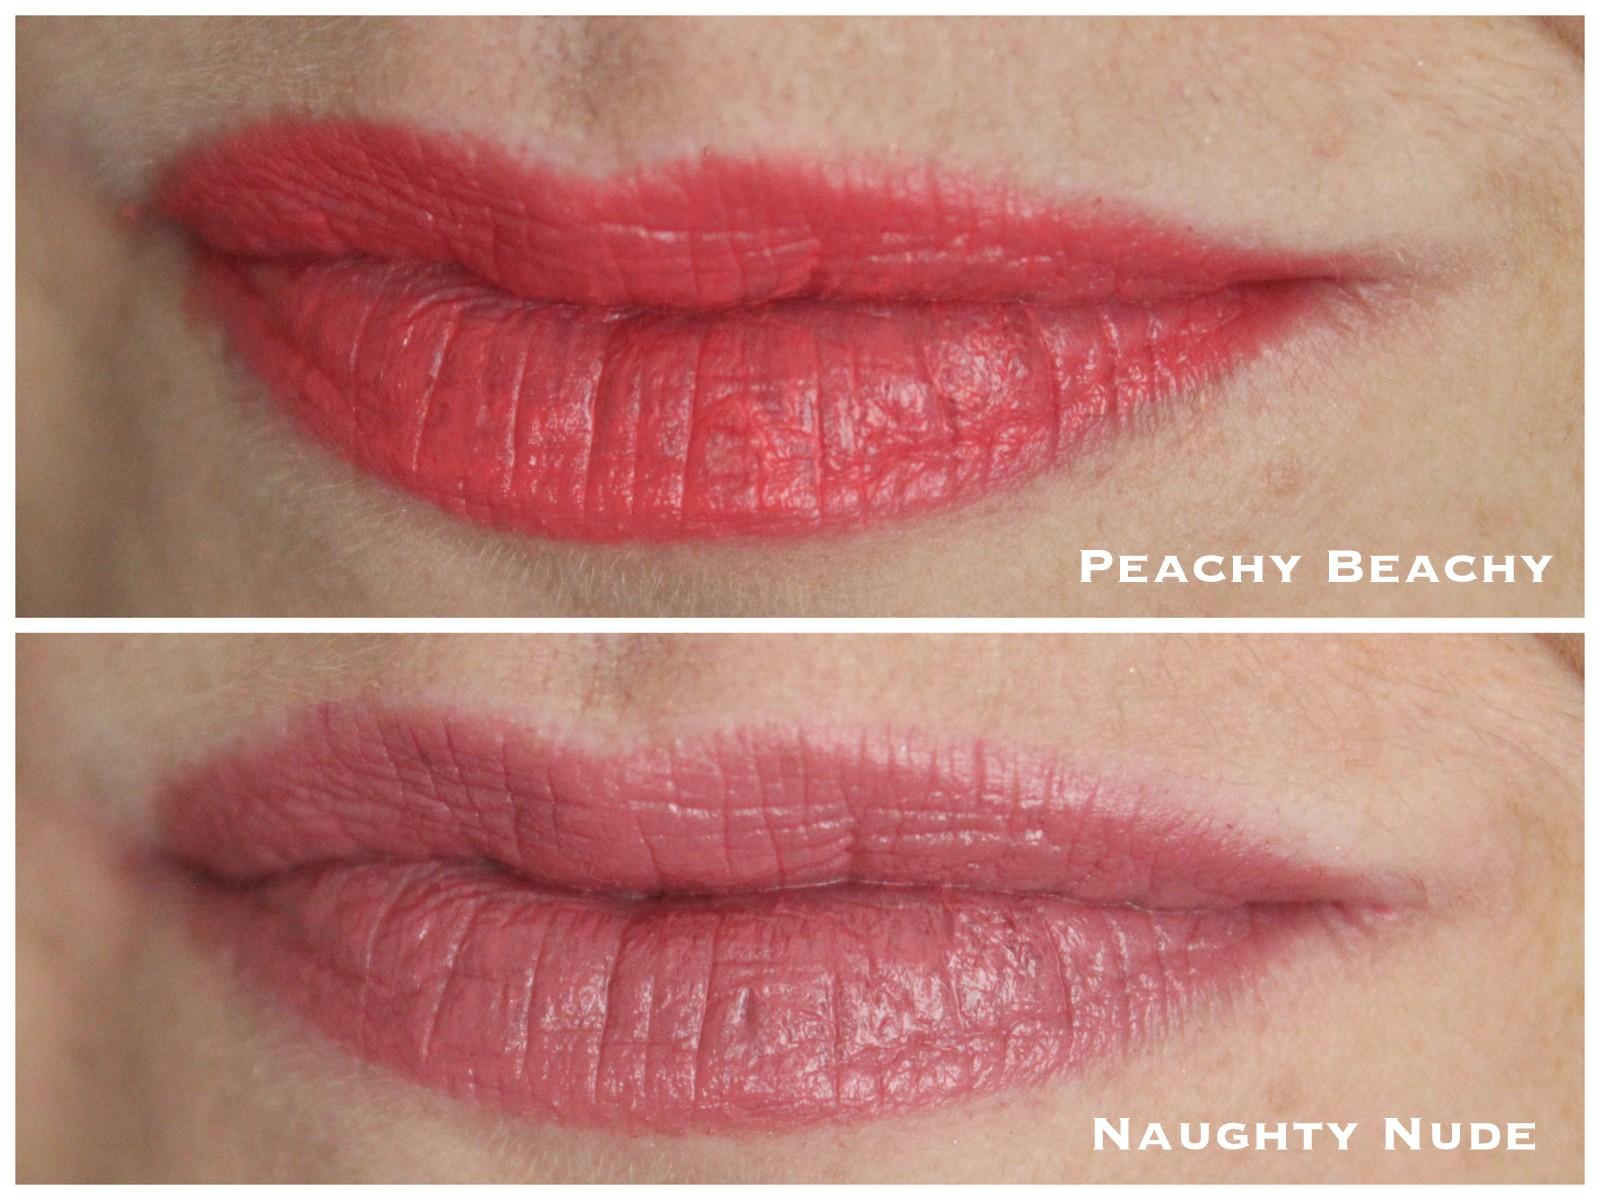 Rimmel The Only 1 Lipsticks - Peachy Beachy, Naughty Nude, Under My Spell, One of a Kind swatches, photos